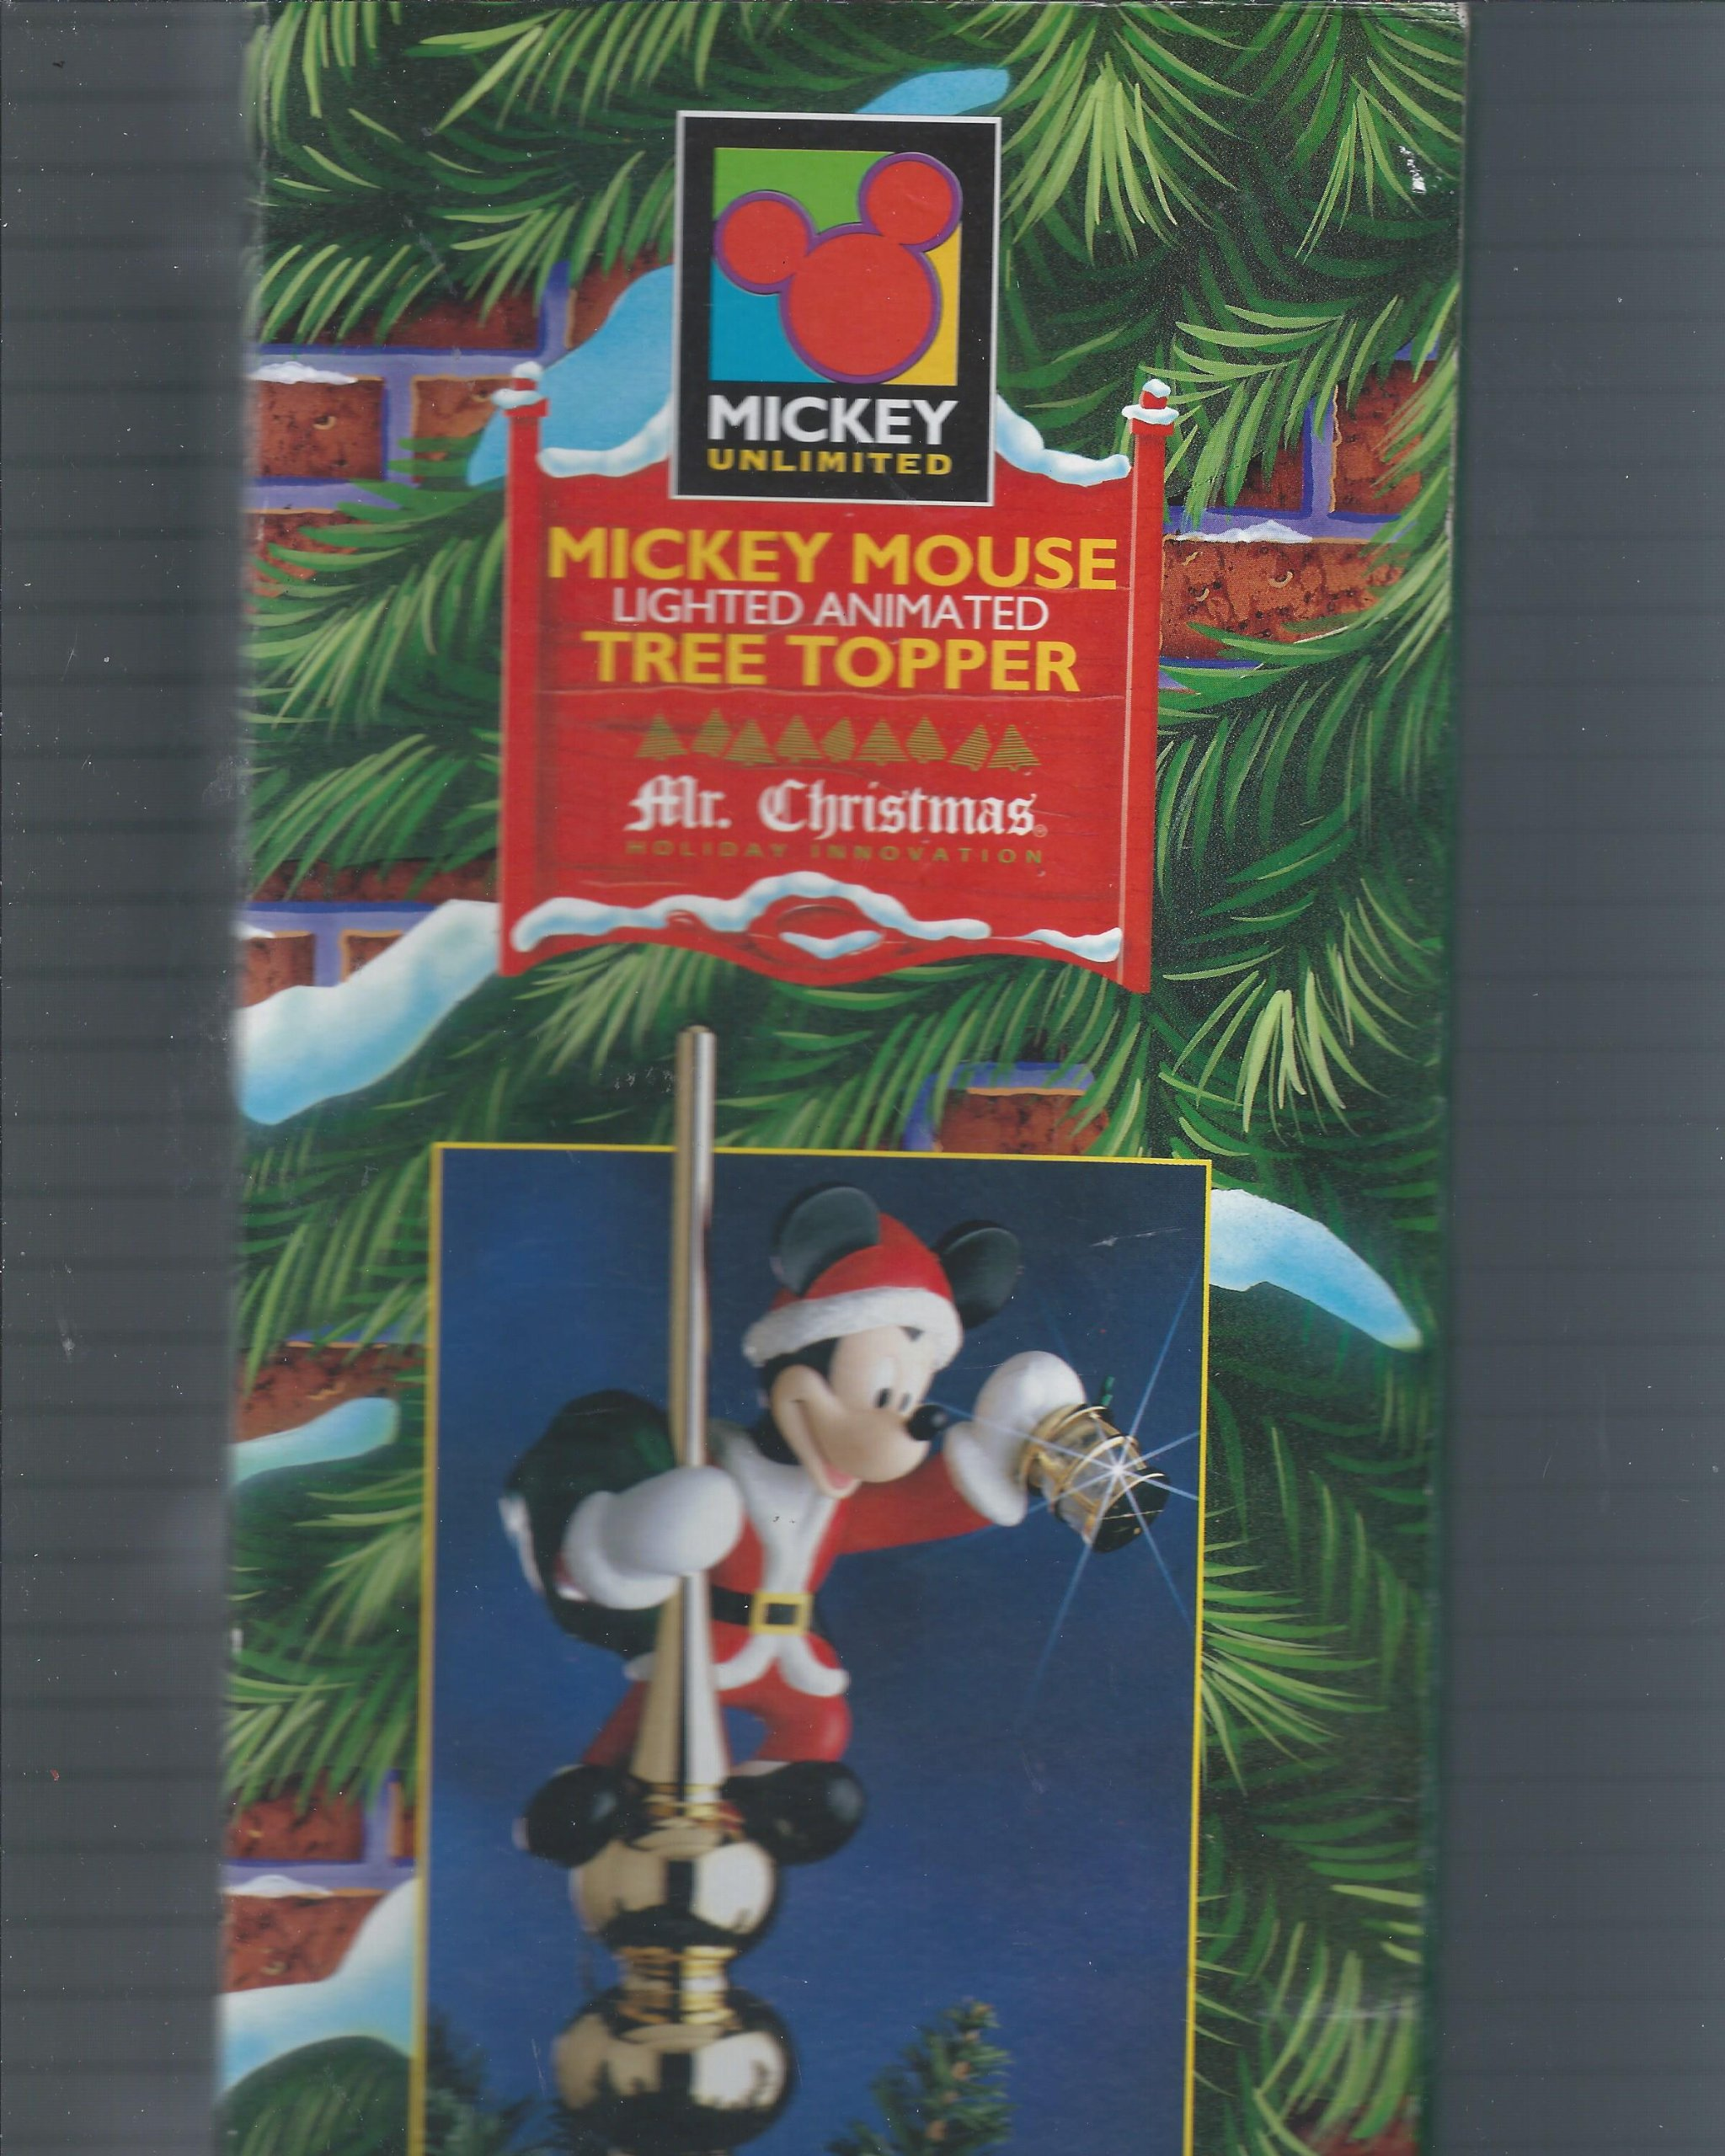 Mr Christmas Disney Mickey Mouse Animated Tree Topper